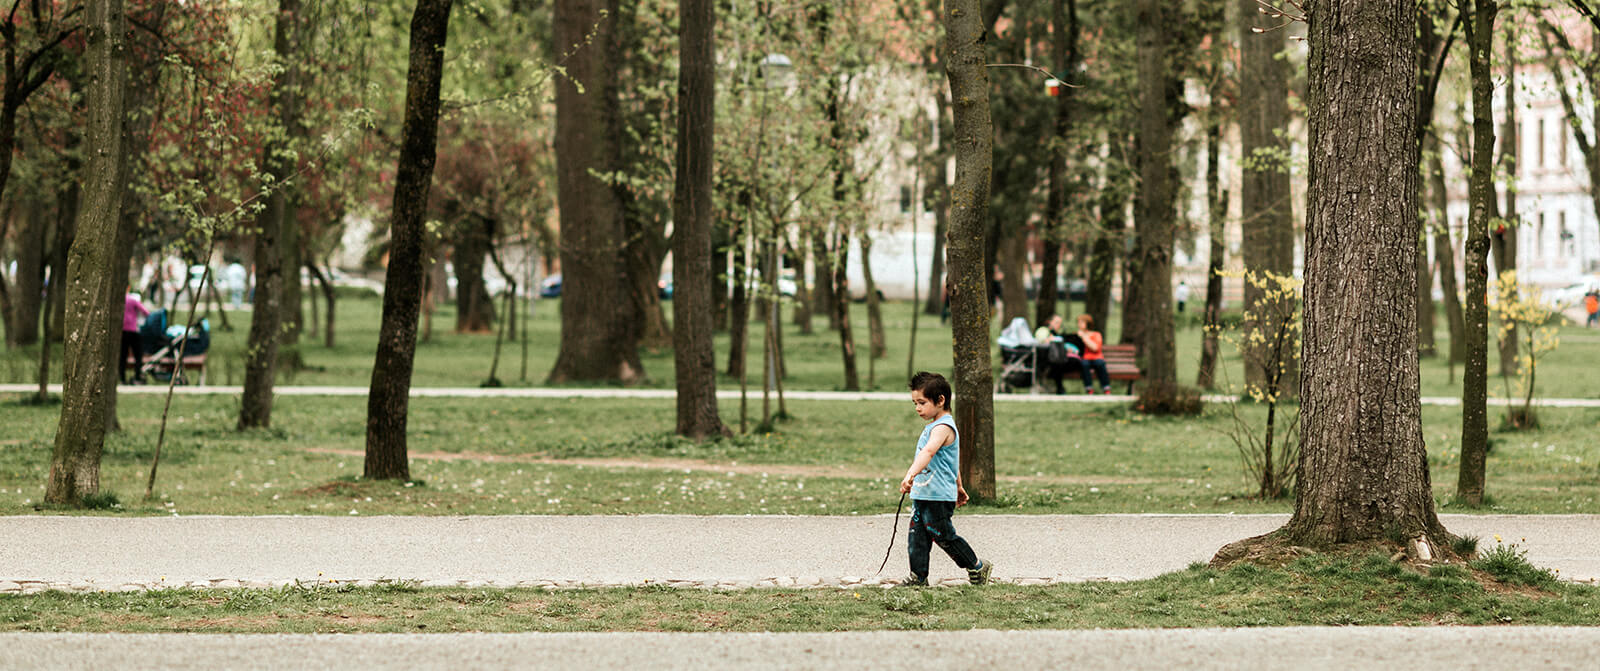 a child playing in a park